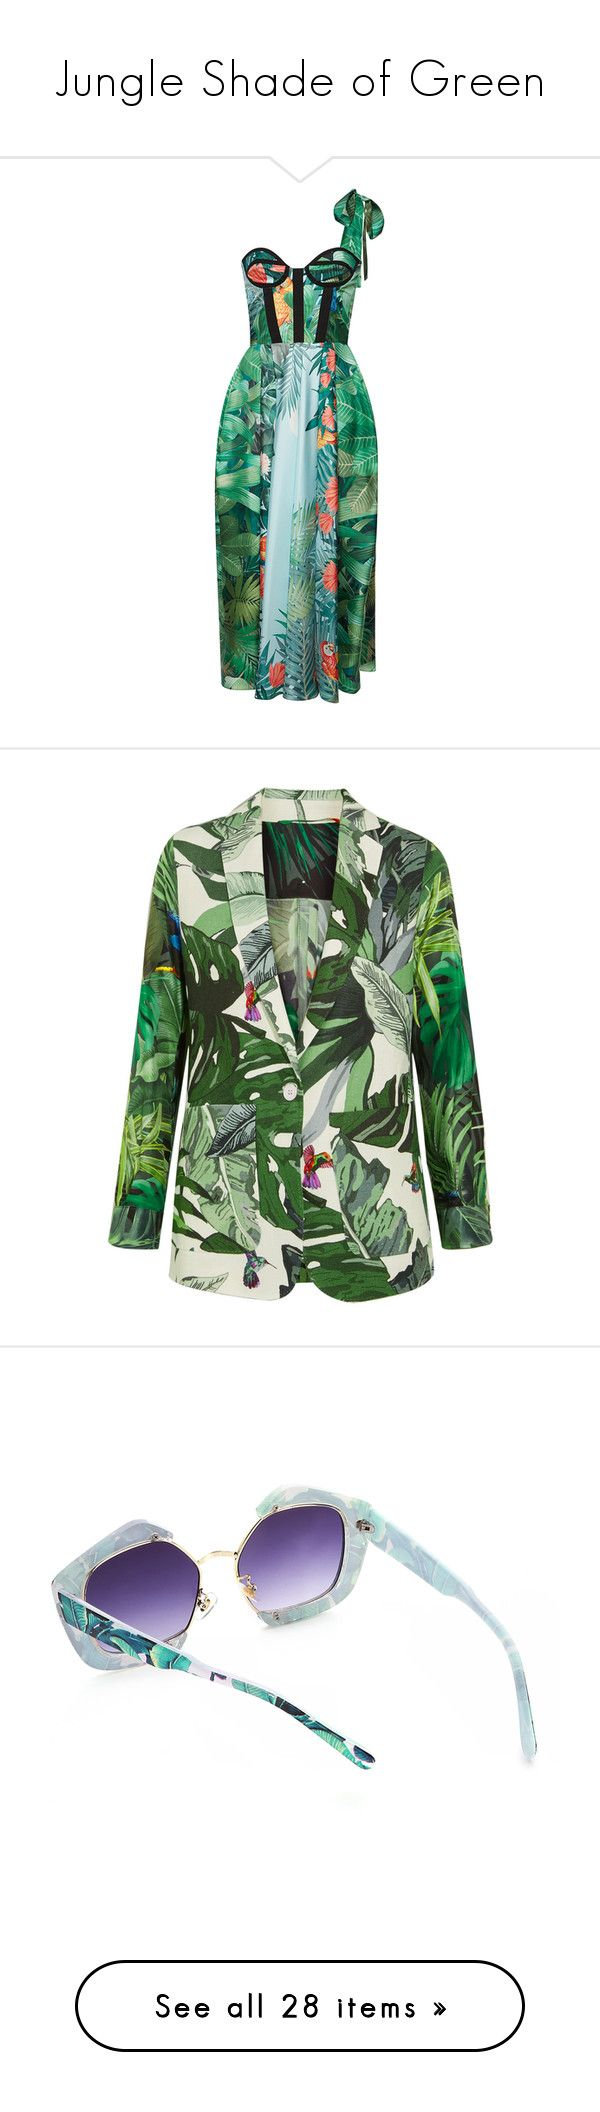 """""""Jungle Shade of Green"""" by greensparkle1 ❤ liked on Polyvore featuring dresses, rochas, corset, green, bone corset, corset style dress, green corset, print cocktail dress, green dress and outerwear"""